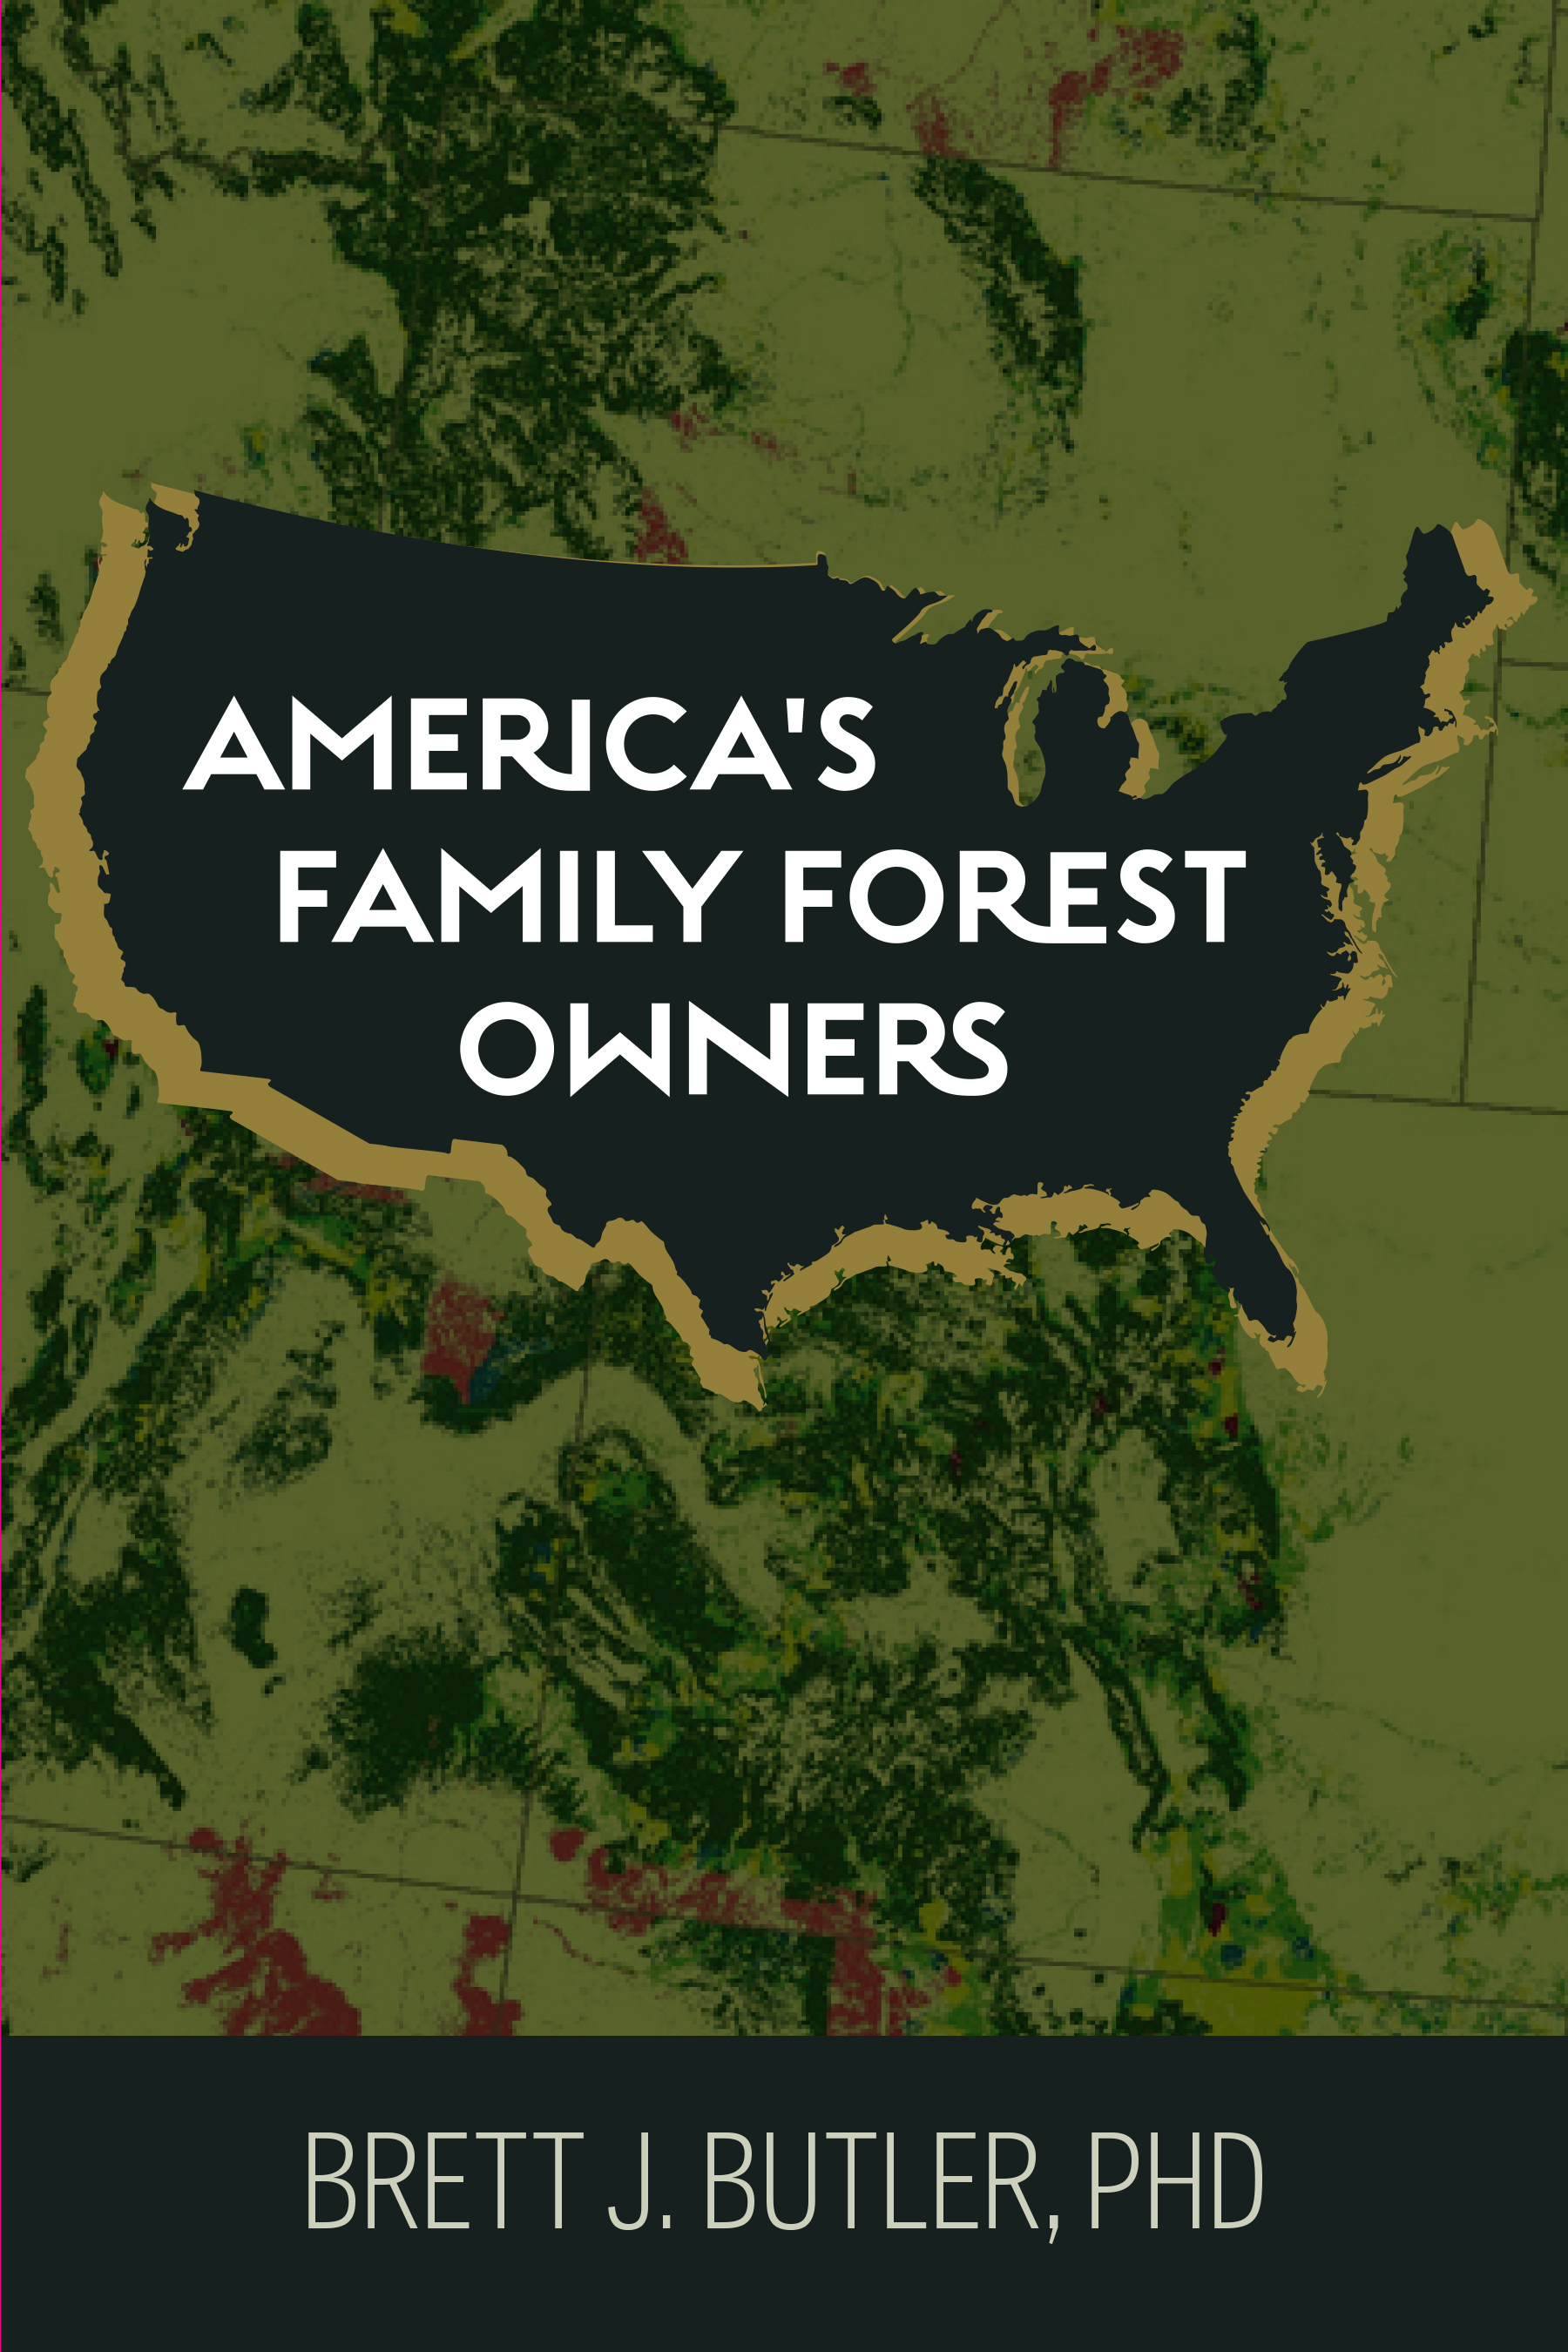 America's Family Forest Owners